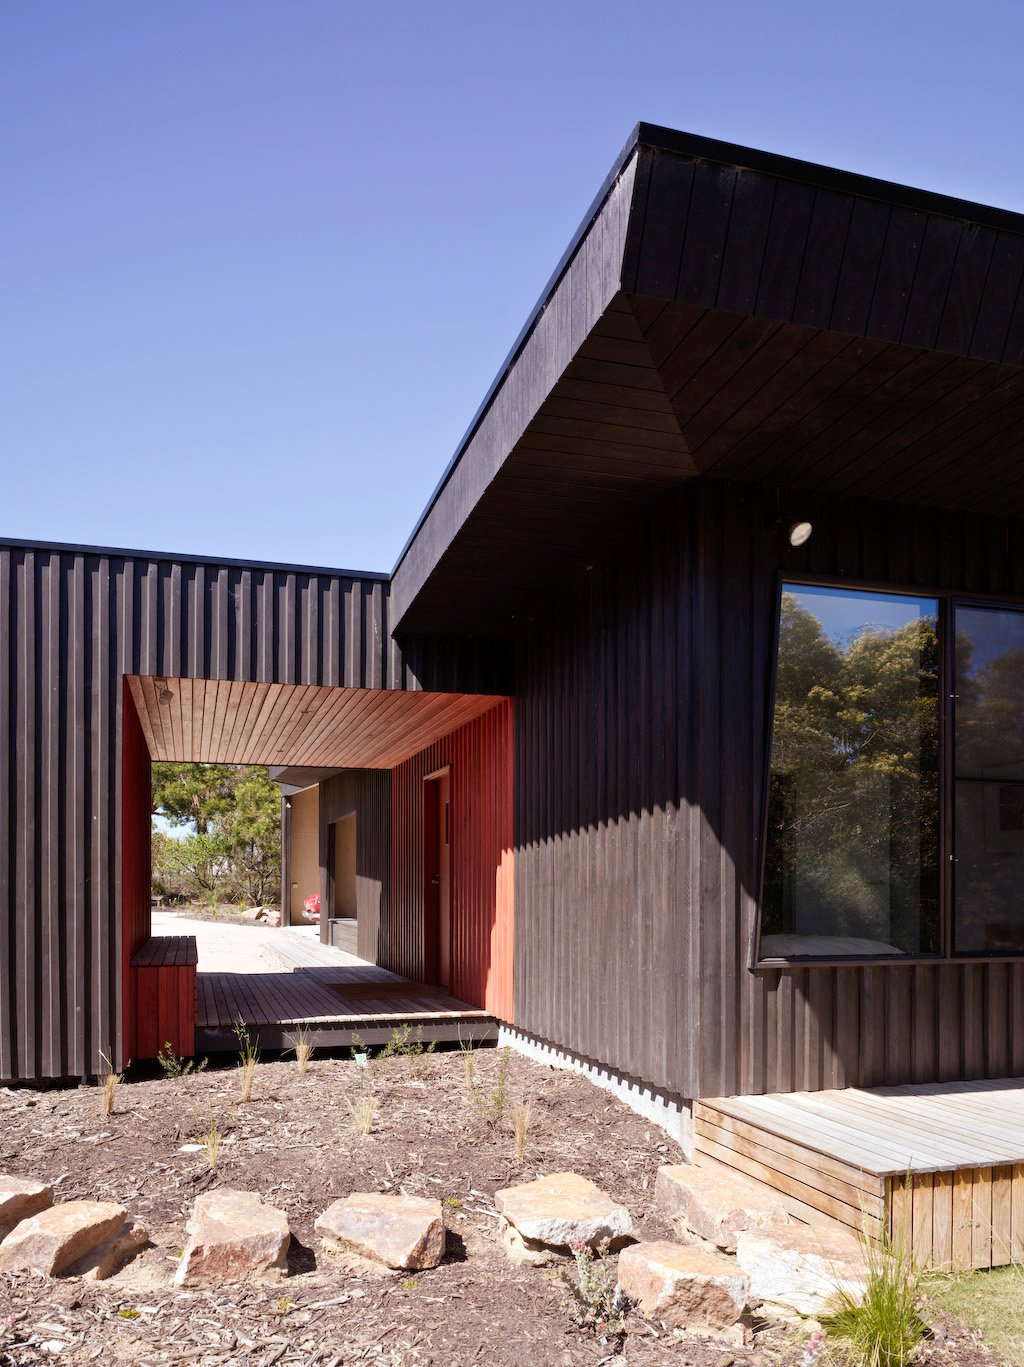 Outdoor, Side Yard, Hardscapes, Wood Patio, Porch, Deck, Boulders, and Walkways Courtyard House, Location: Somers Victoria Australia, Architect: Rowan Opat .Evolving from the notion of a series of outbuildings  on a greenfi eld site, principles of  passive solar design have informed this �courtyard  house�. The northern eaves respond directly to  shading becoming shallower in proportion to the  depth of space as experienced in the square plan.  As the dominant designed area, on this hectare  site, the courtyard both surrounds and is  surrounded by the house, creating a contained  space within an otherwise semi-rural block.  30+ All-Black Exterior Modern Homes by Zachary Edelson from Courtyard House by Rowan Opat